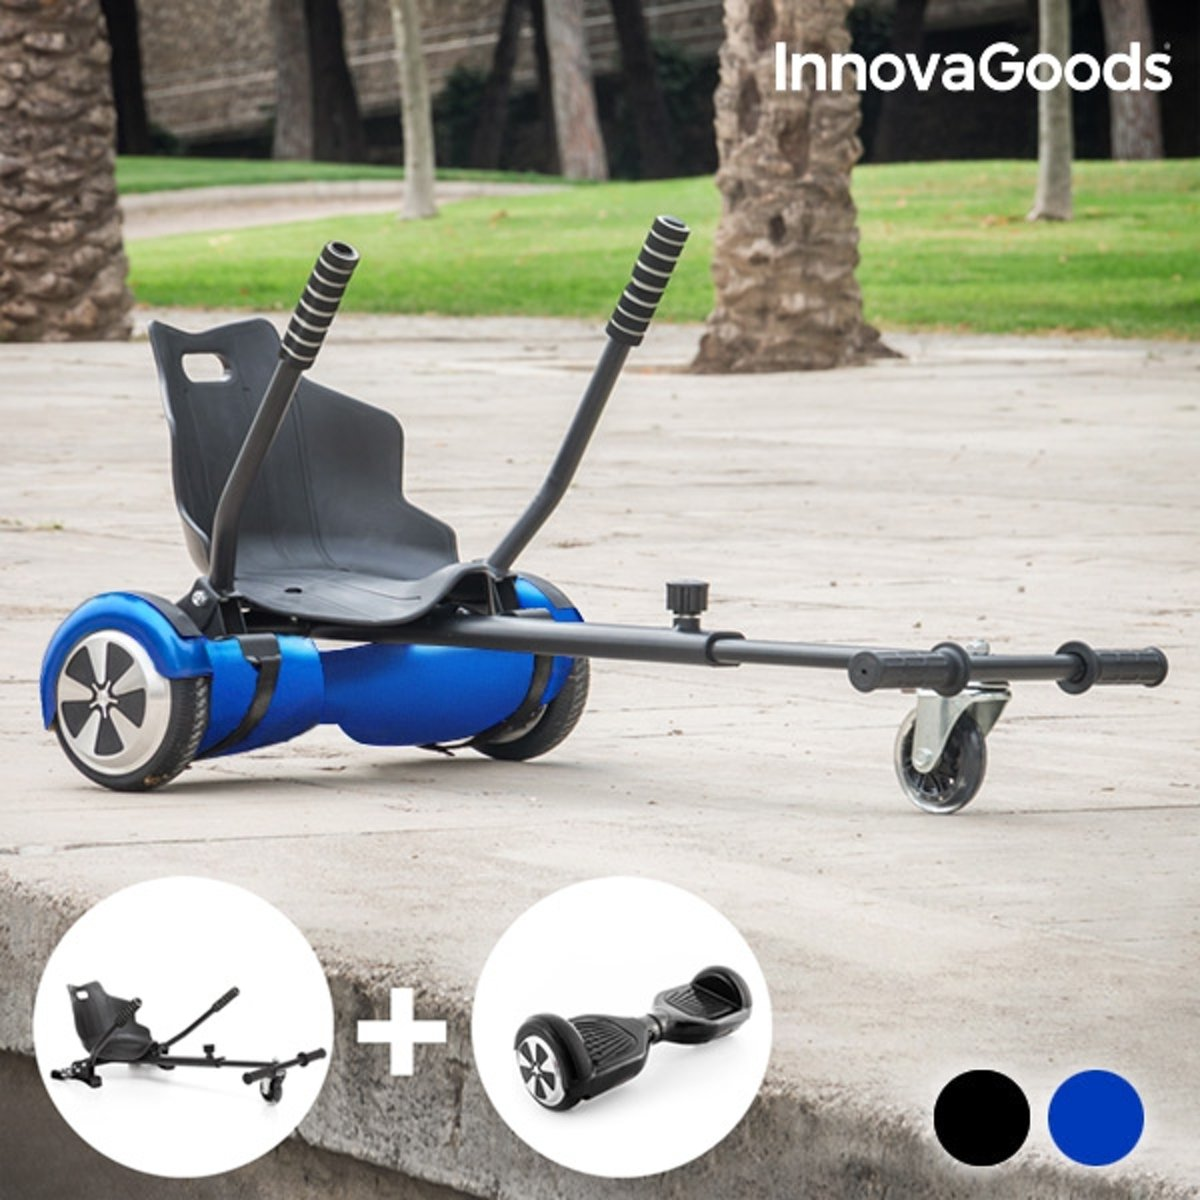 Hoverkart + Hoverboard Kit Inclusief Electrische Step Hoverboard